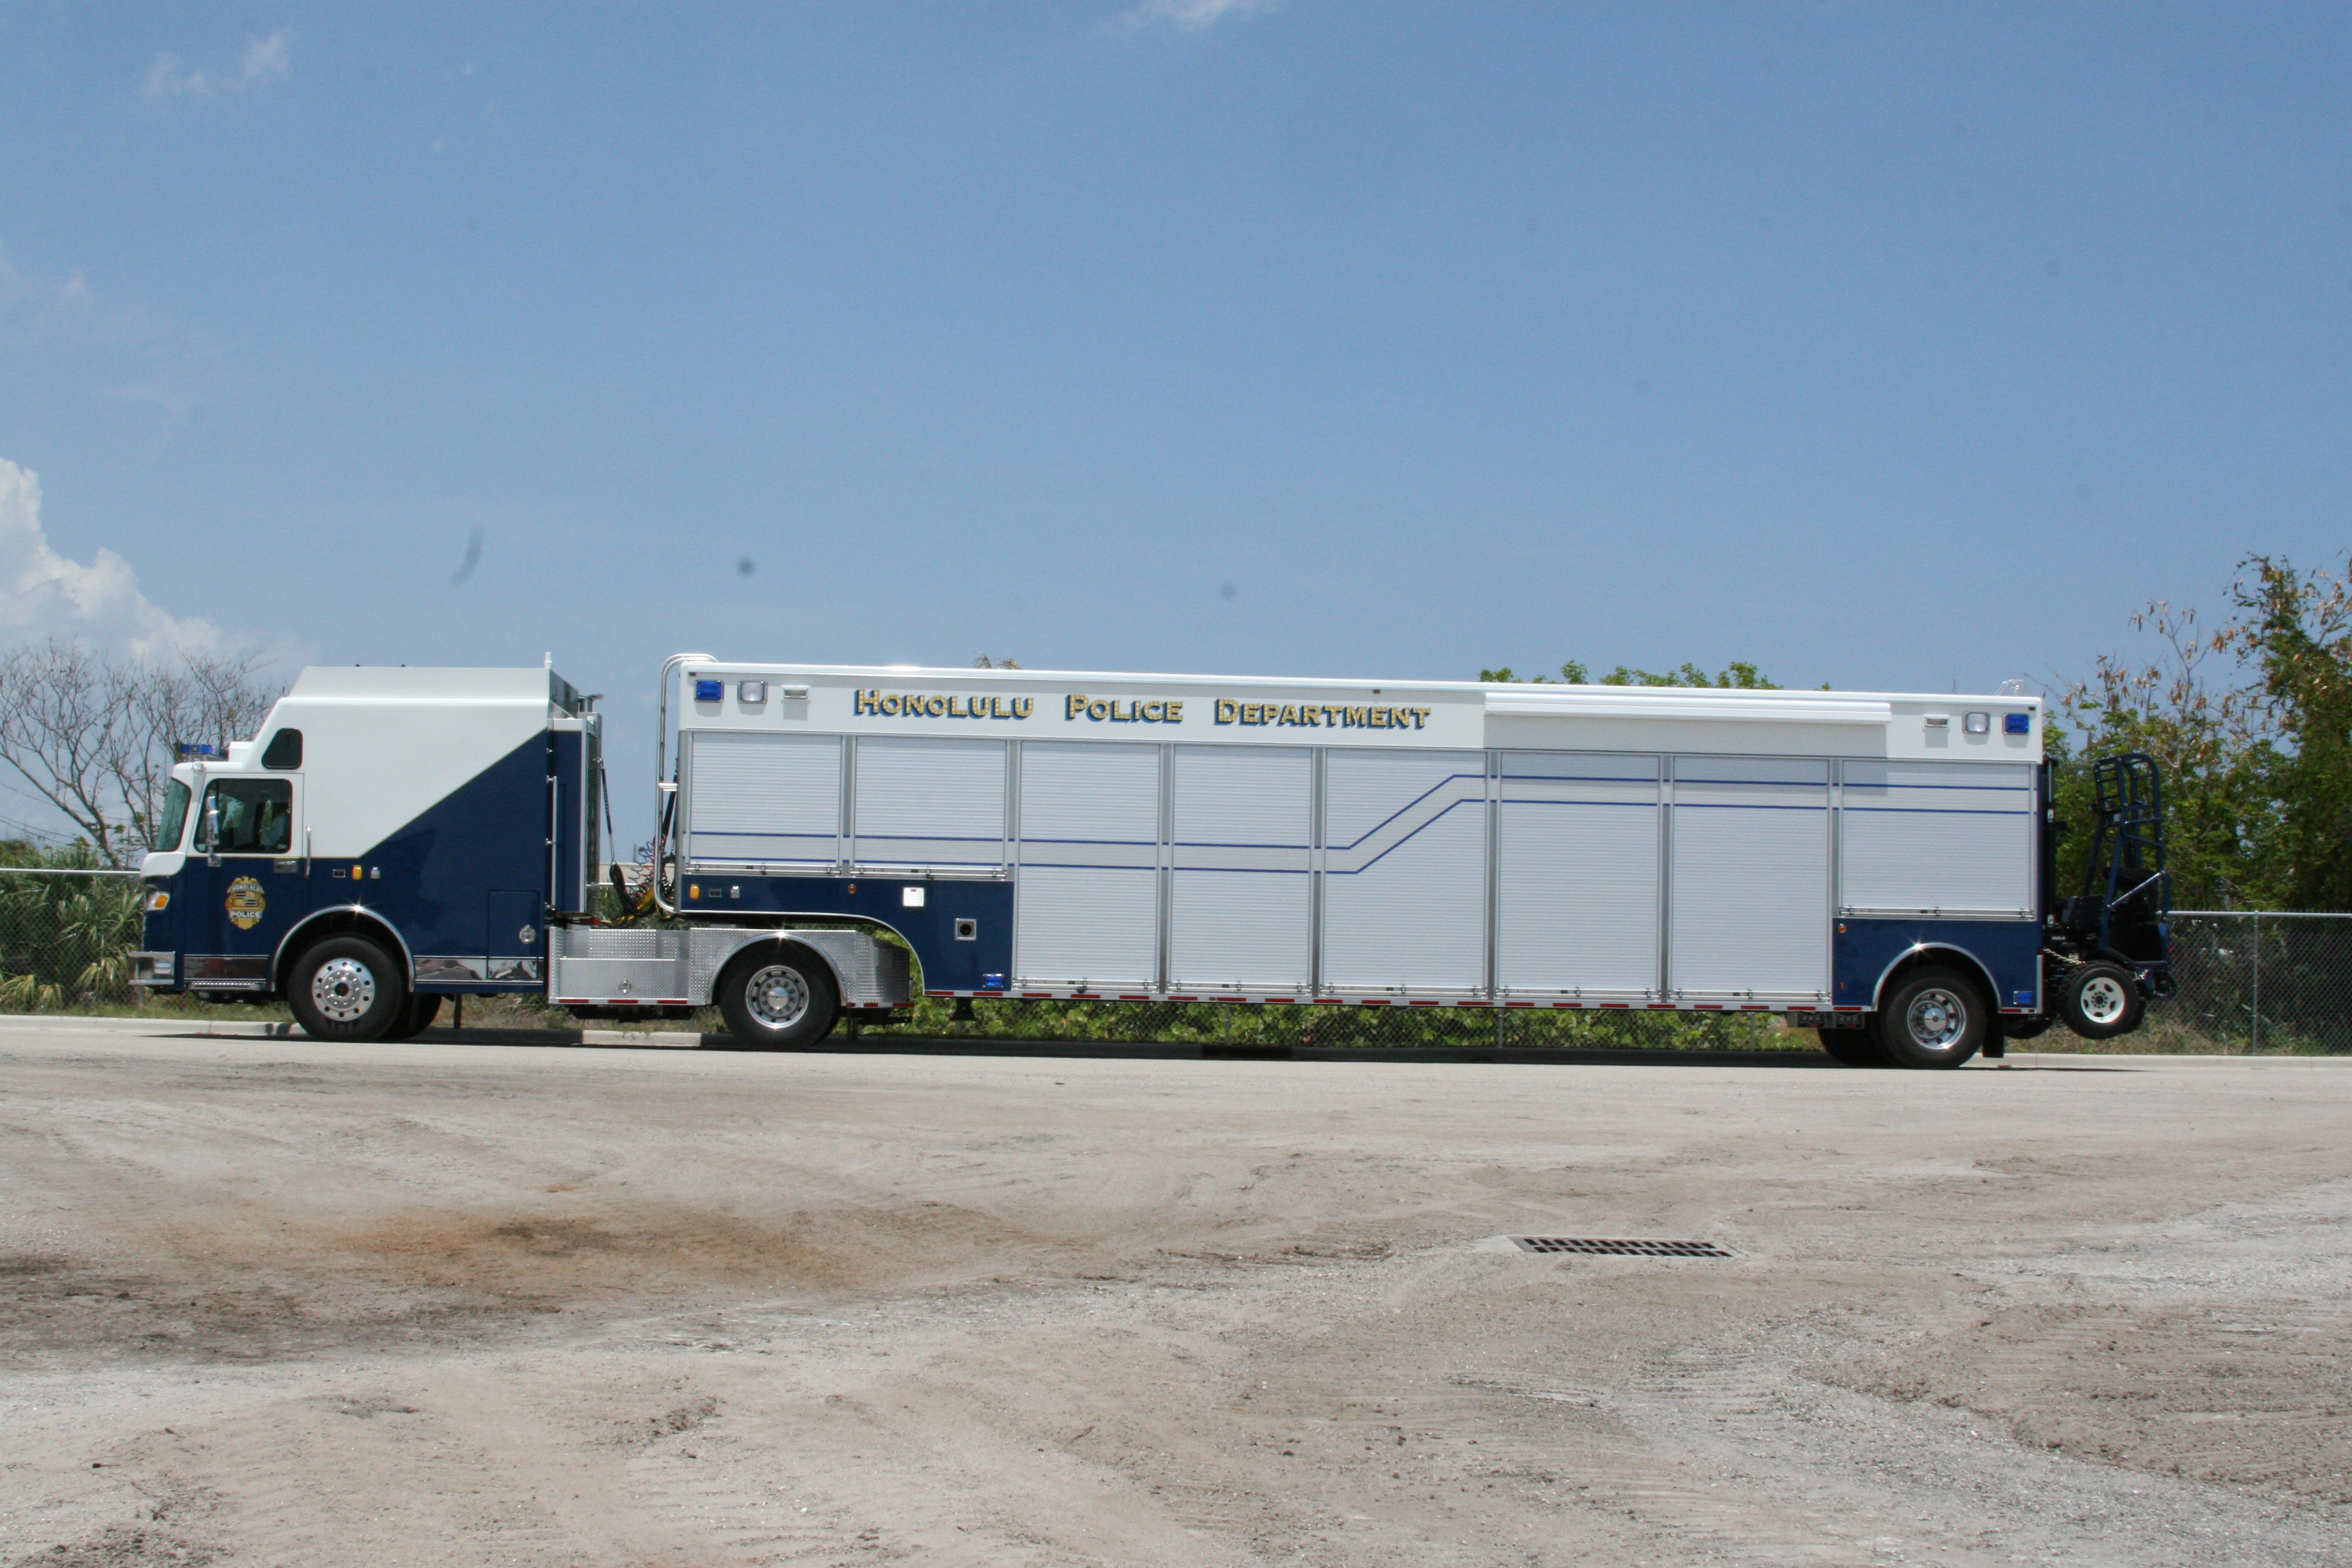 43-Ft Tractor Trailer Command Veh.